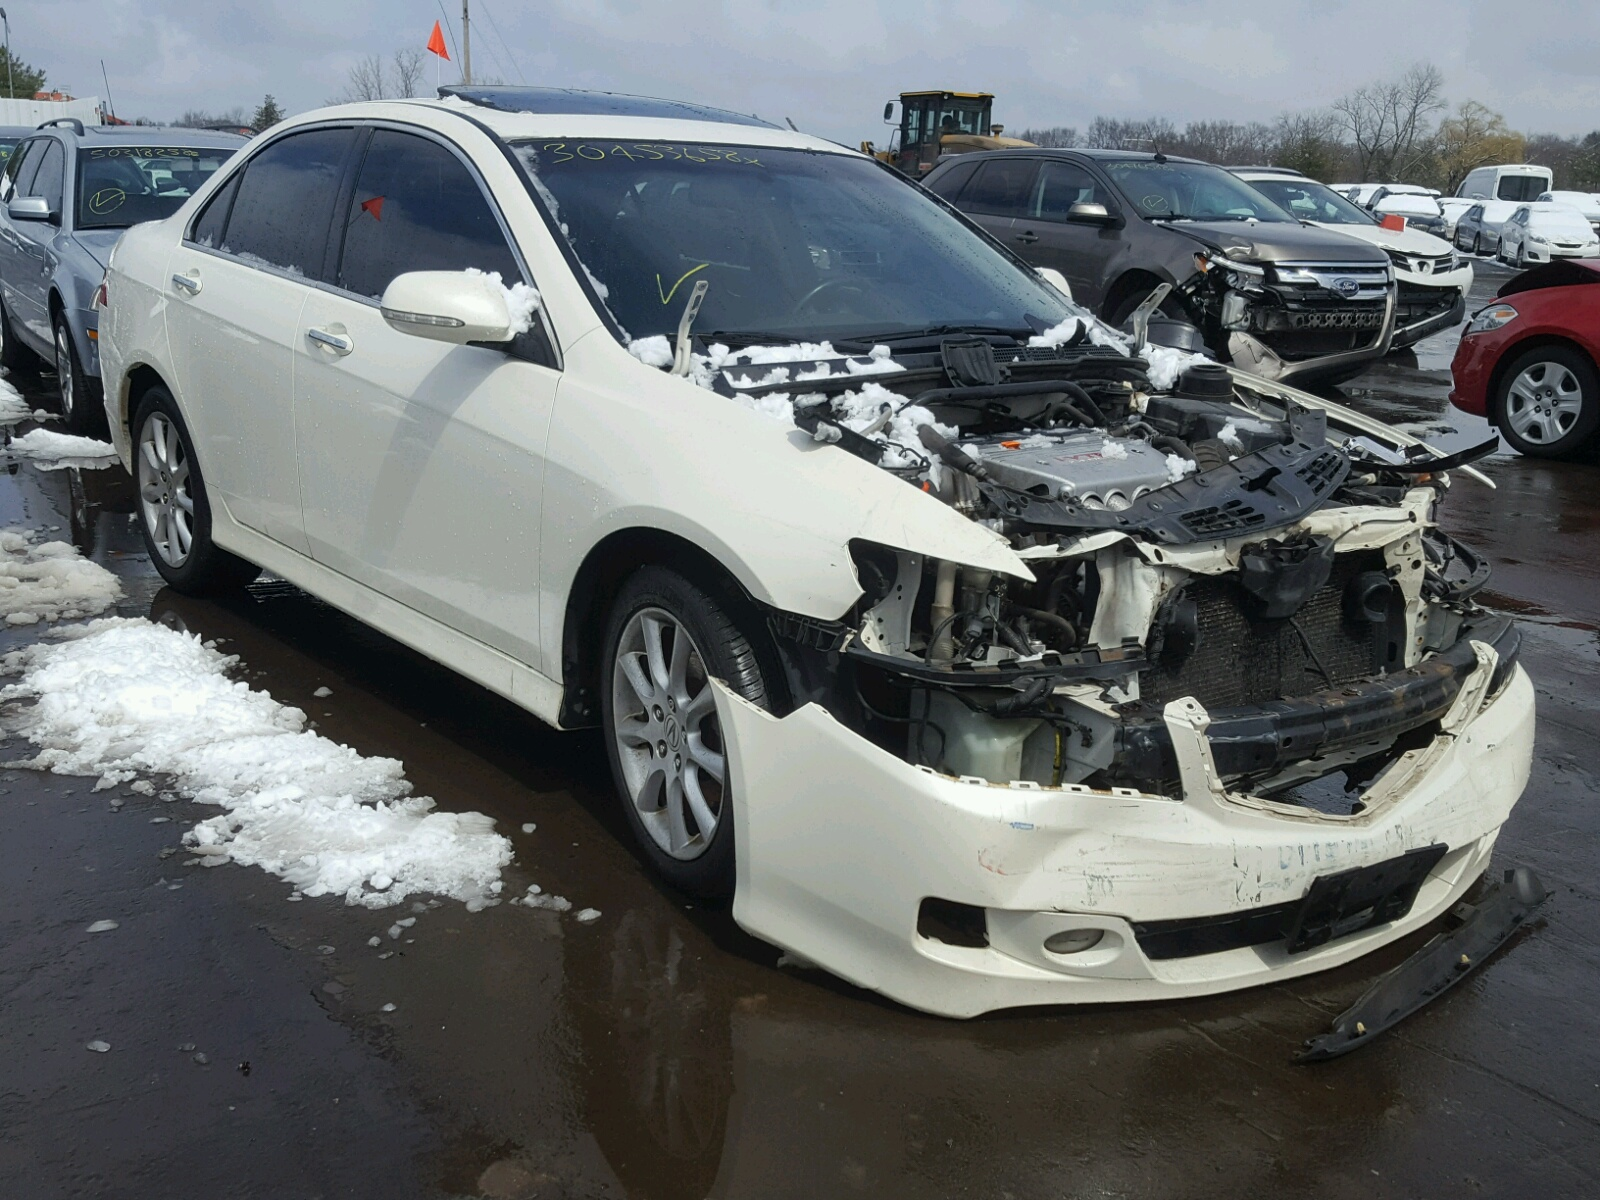 JHCLC WHITE ACURA TSX On Sale In CT HARTFORD - Acura tsx for sale in ct